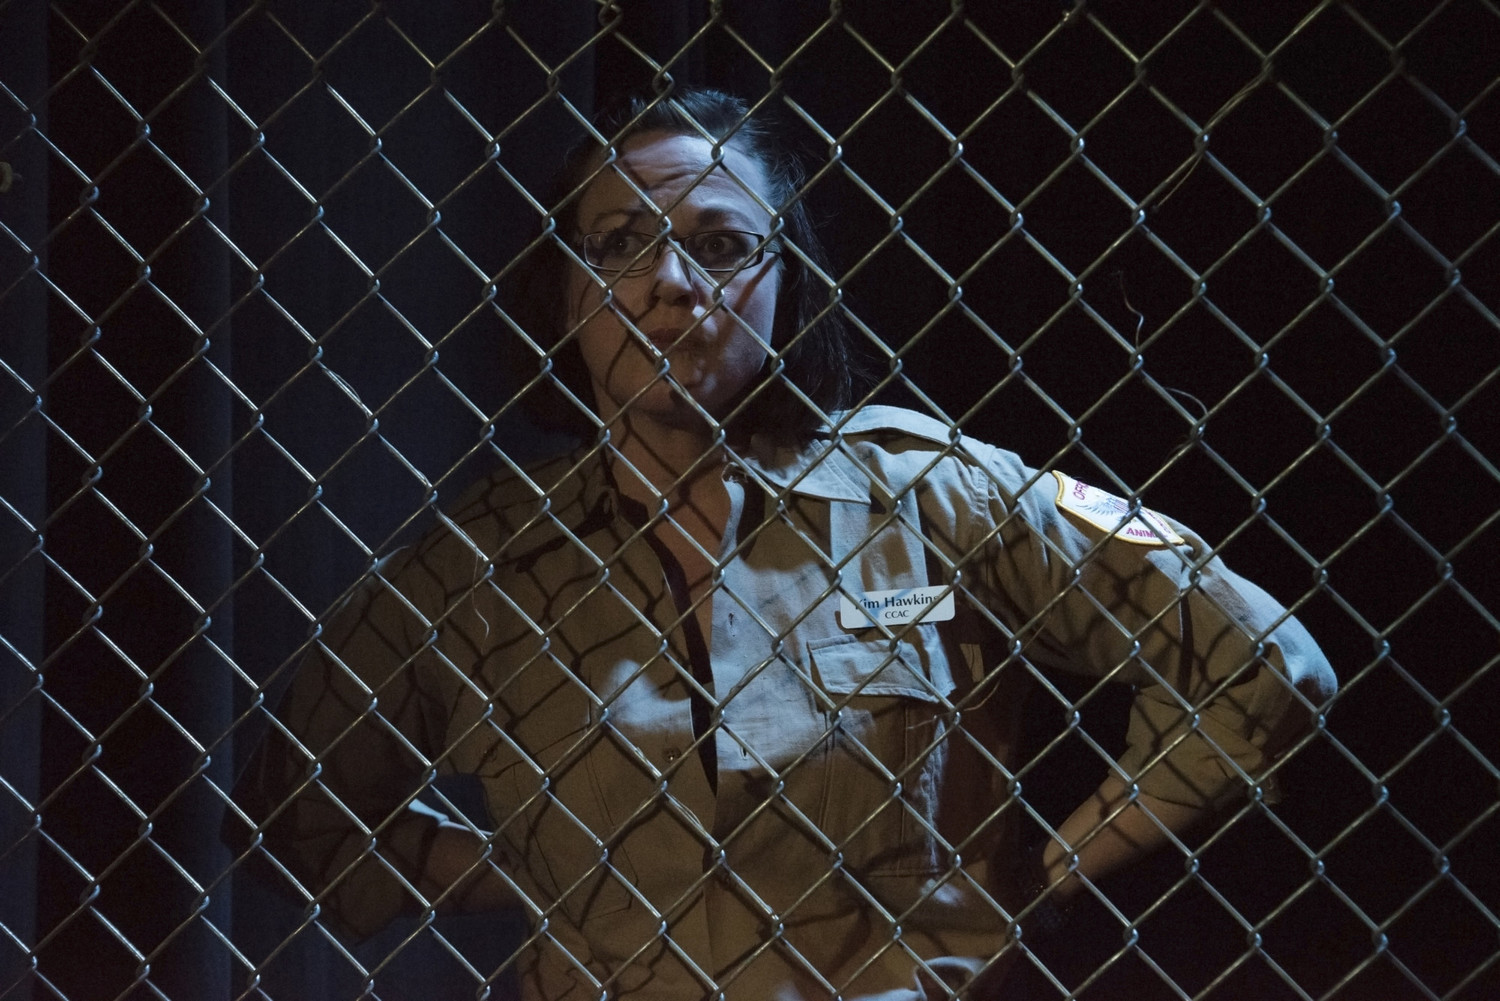 BWW Review: World Premiere of Chandler Hubbard's Noteworthy ANIMAL CONTROL at Firehouse Theatre